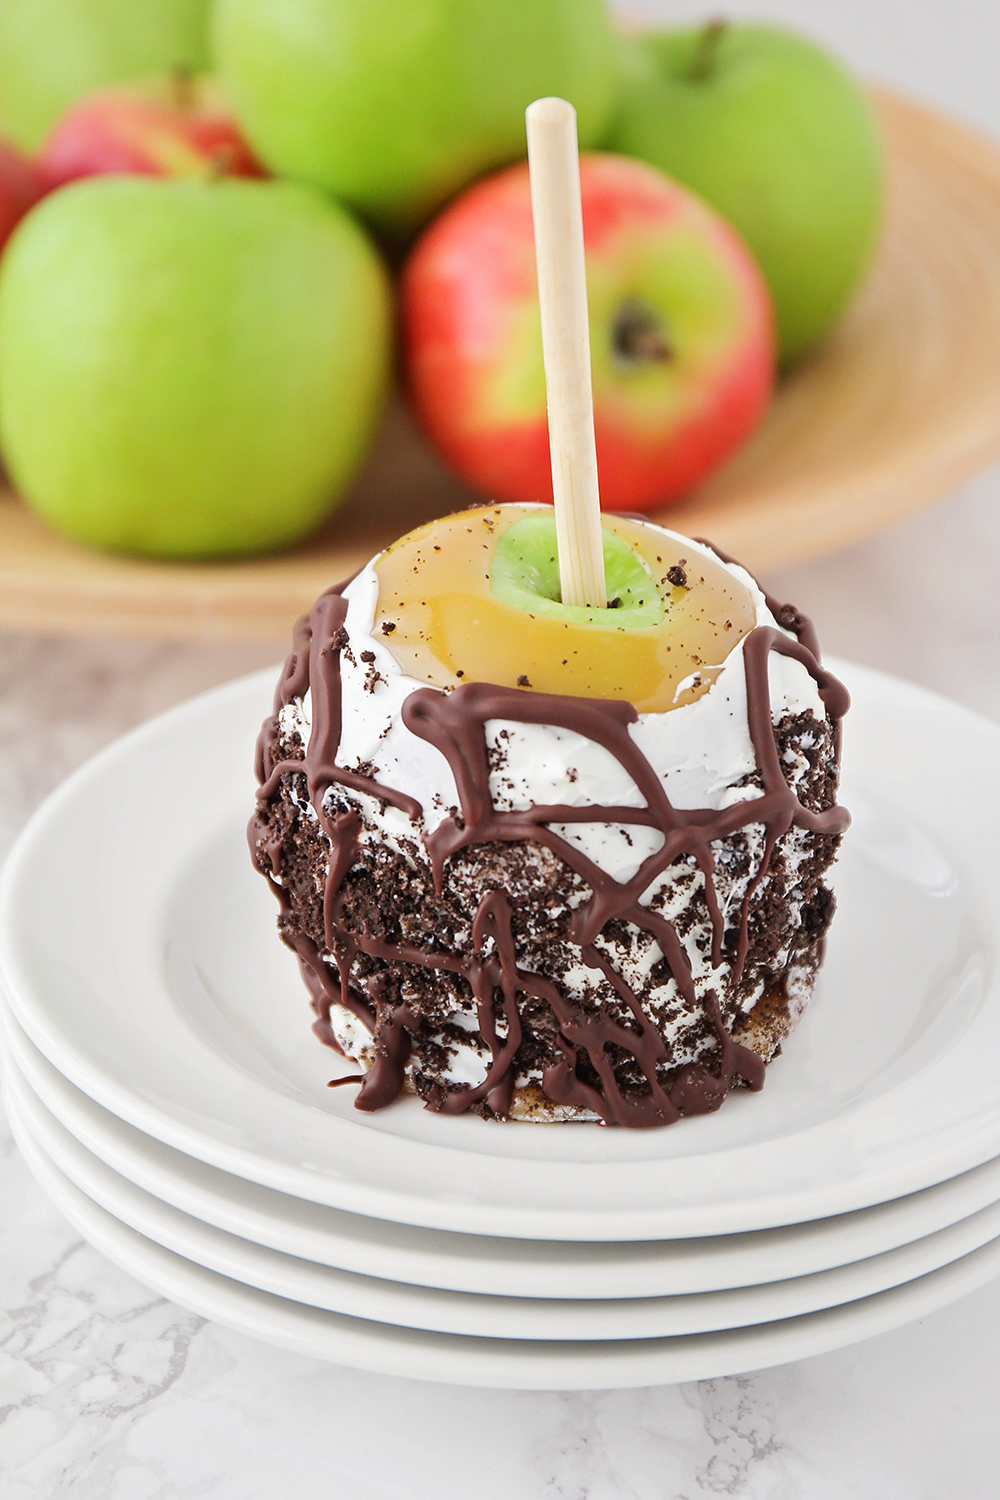 These gourmet caramel apples are made with the best homemade caramel, and taste just like the ones from the candy shop!